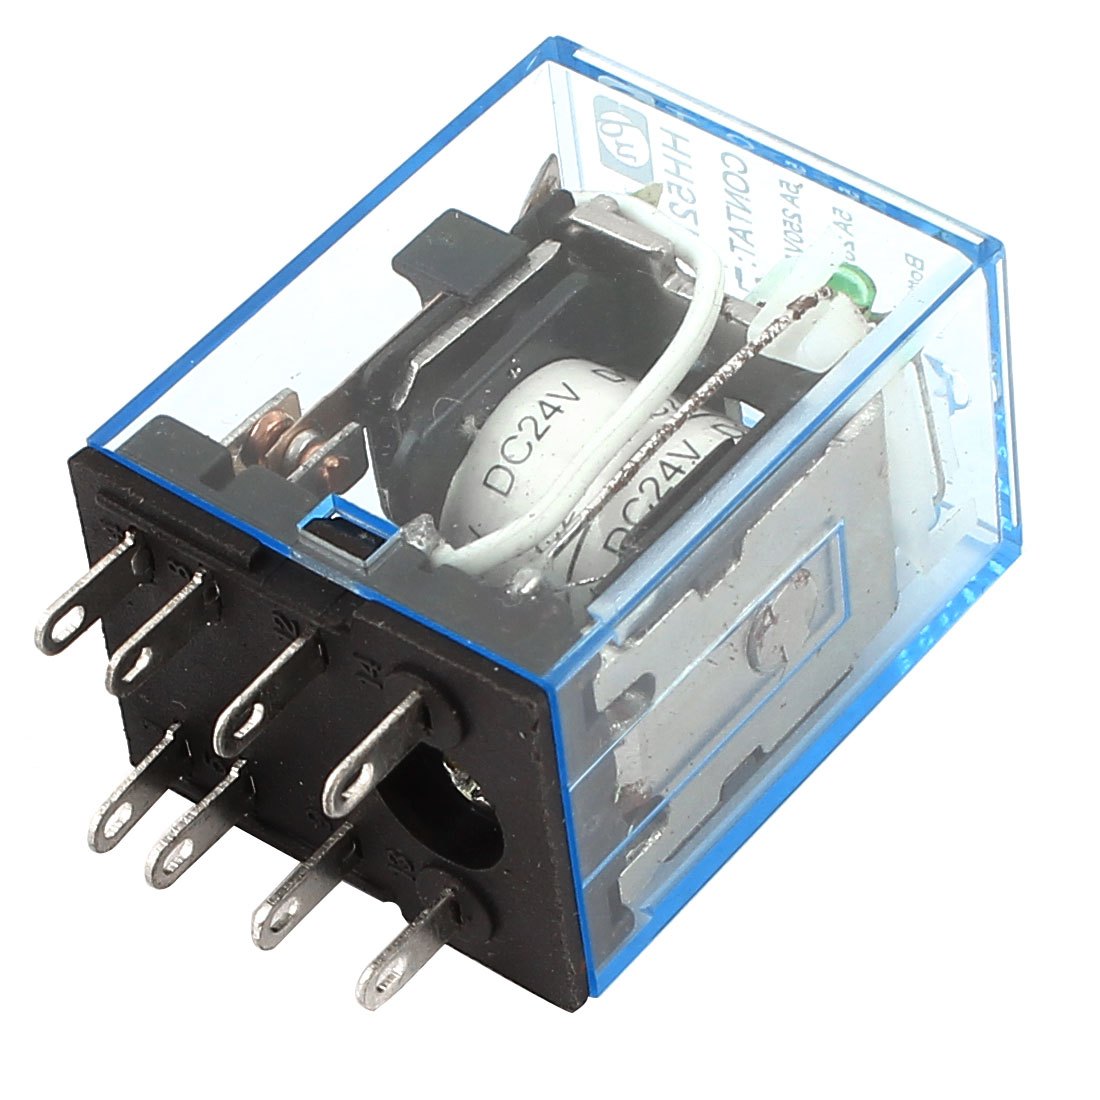 HH52P DC 28V 5A Coil 8 Pin DPDT Green LED Indicator Light Power Relay